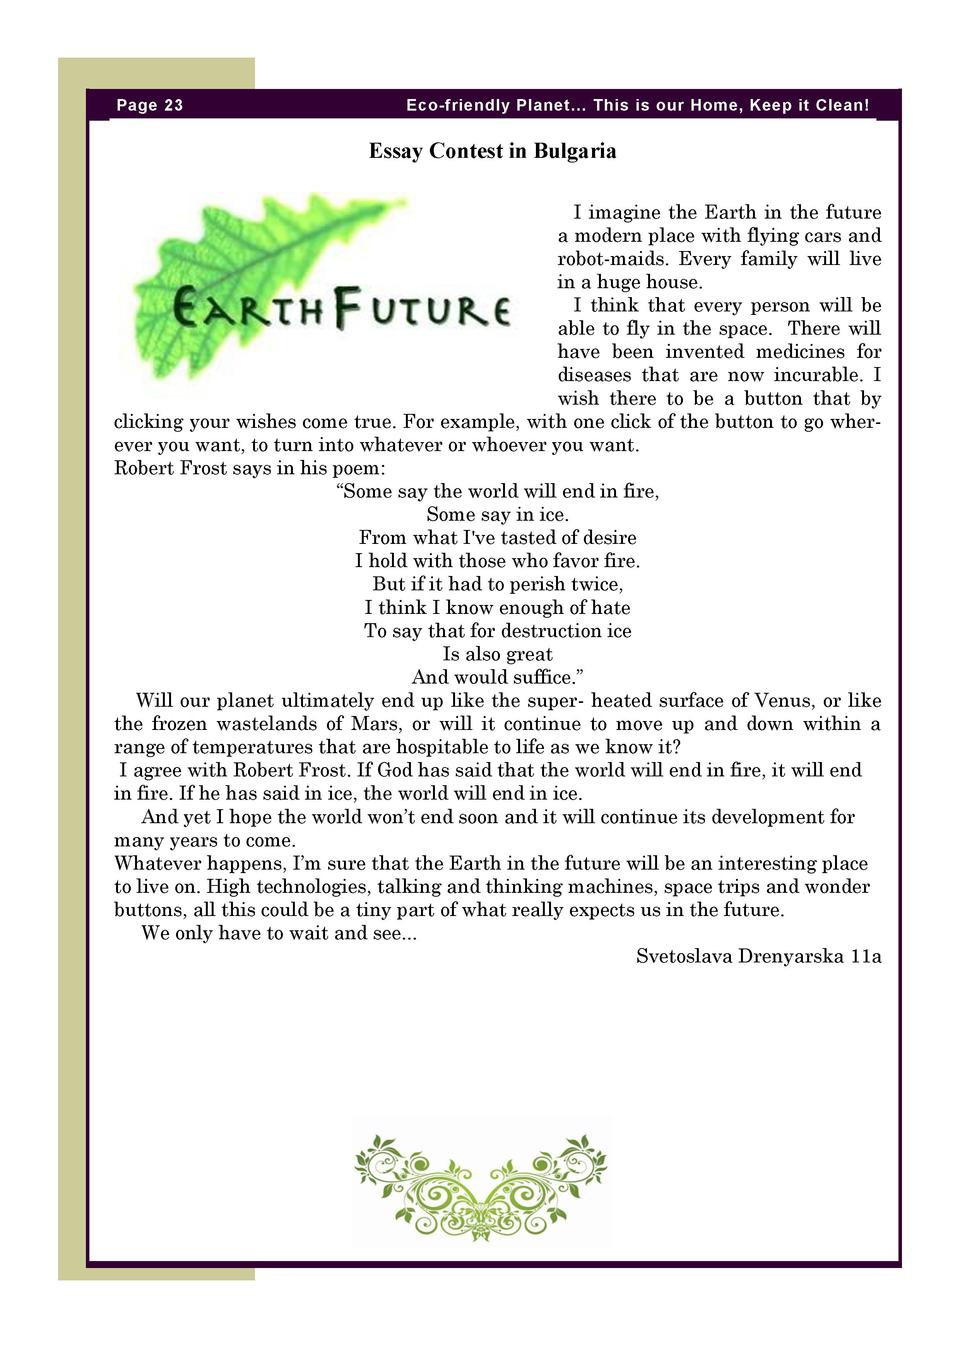 eco friendly planet com page 23 eco friendly planet this is our home keep it clean essay contest